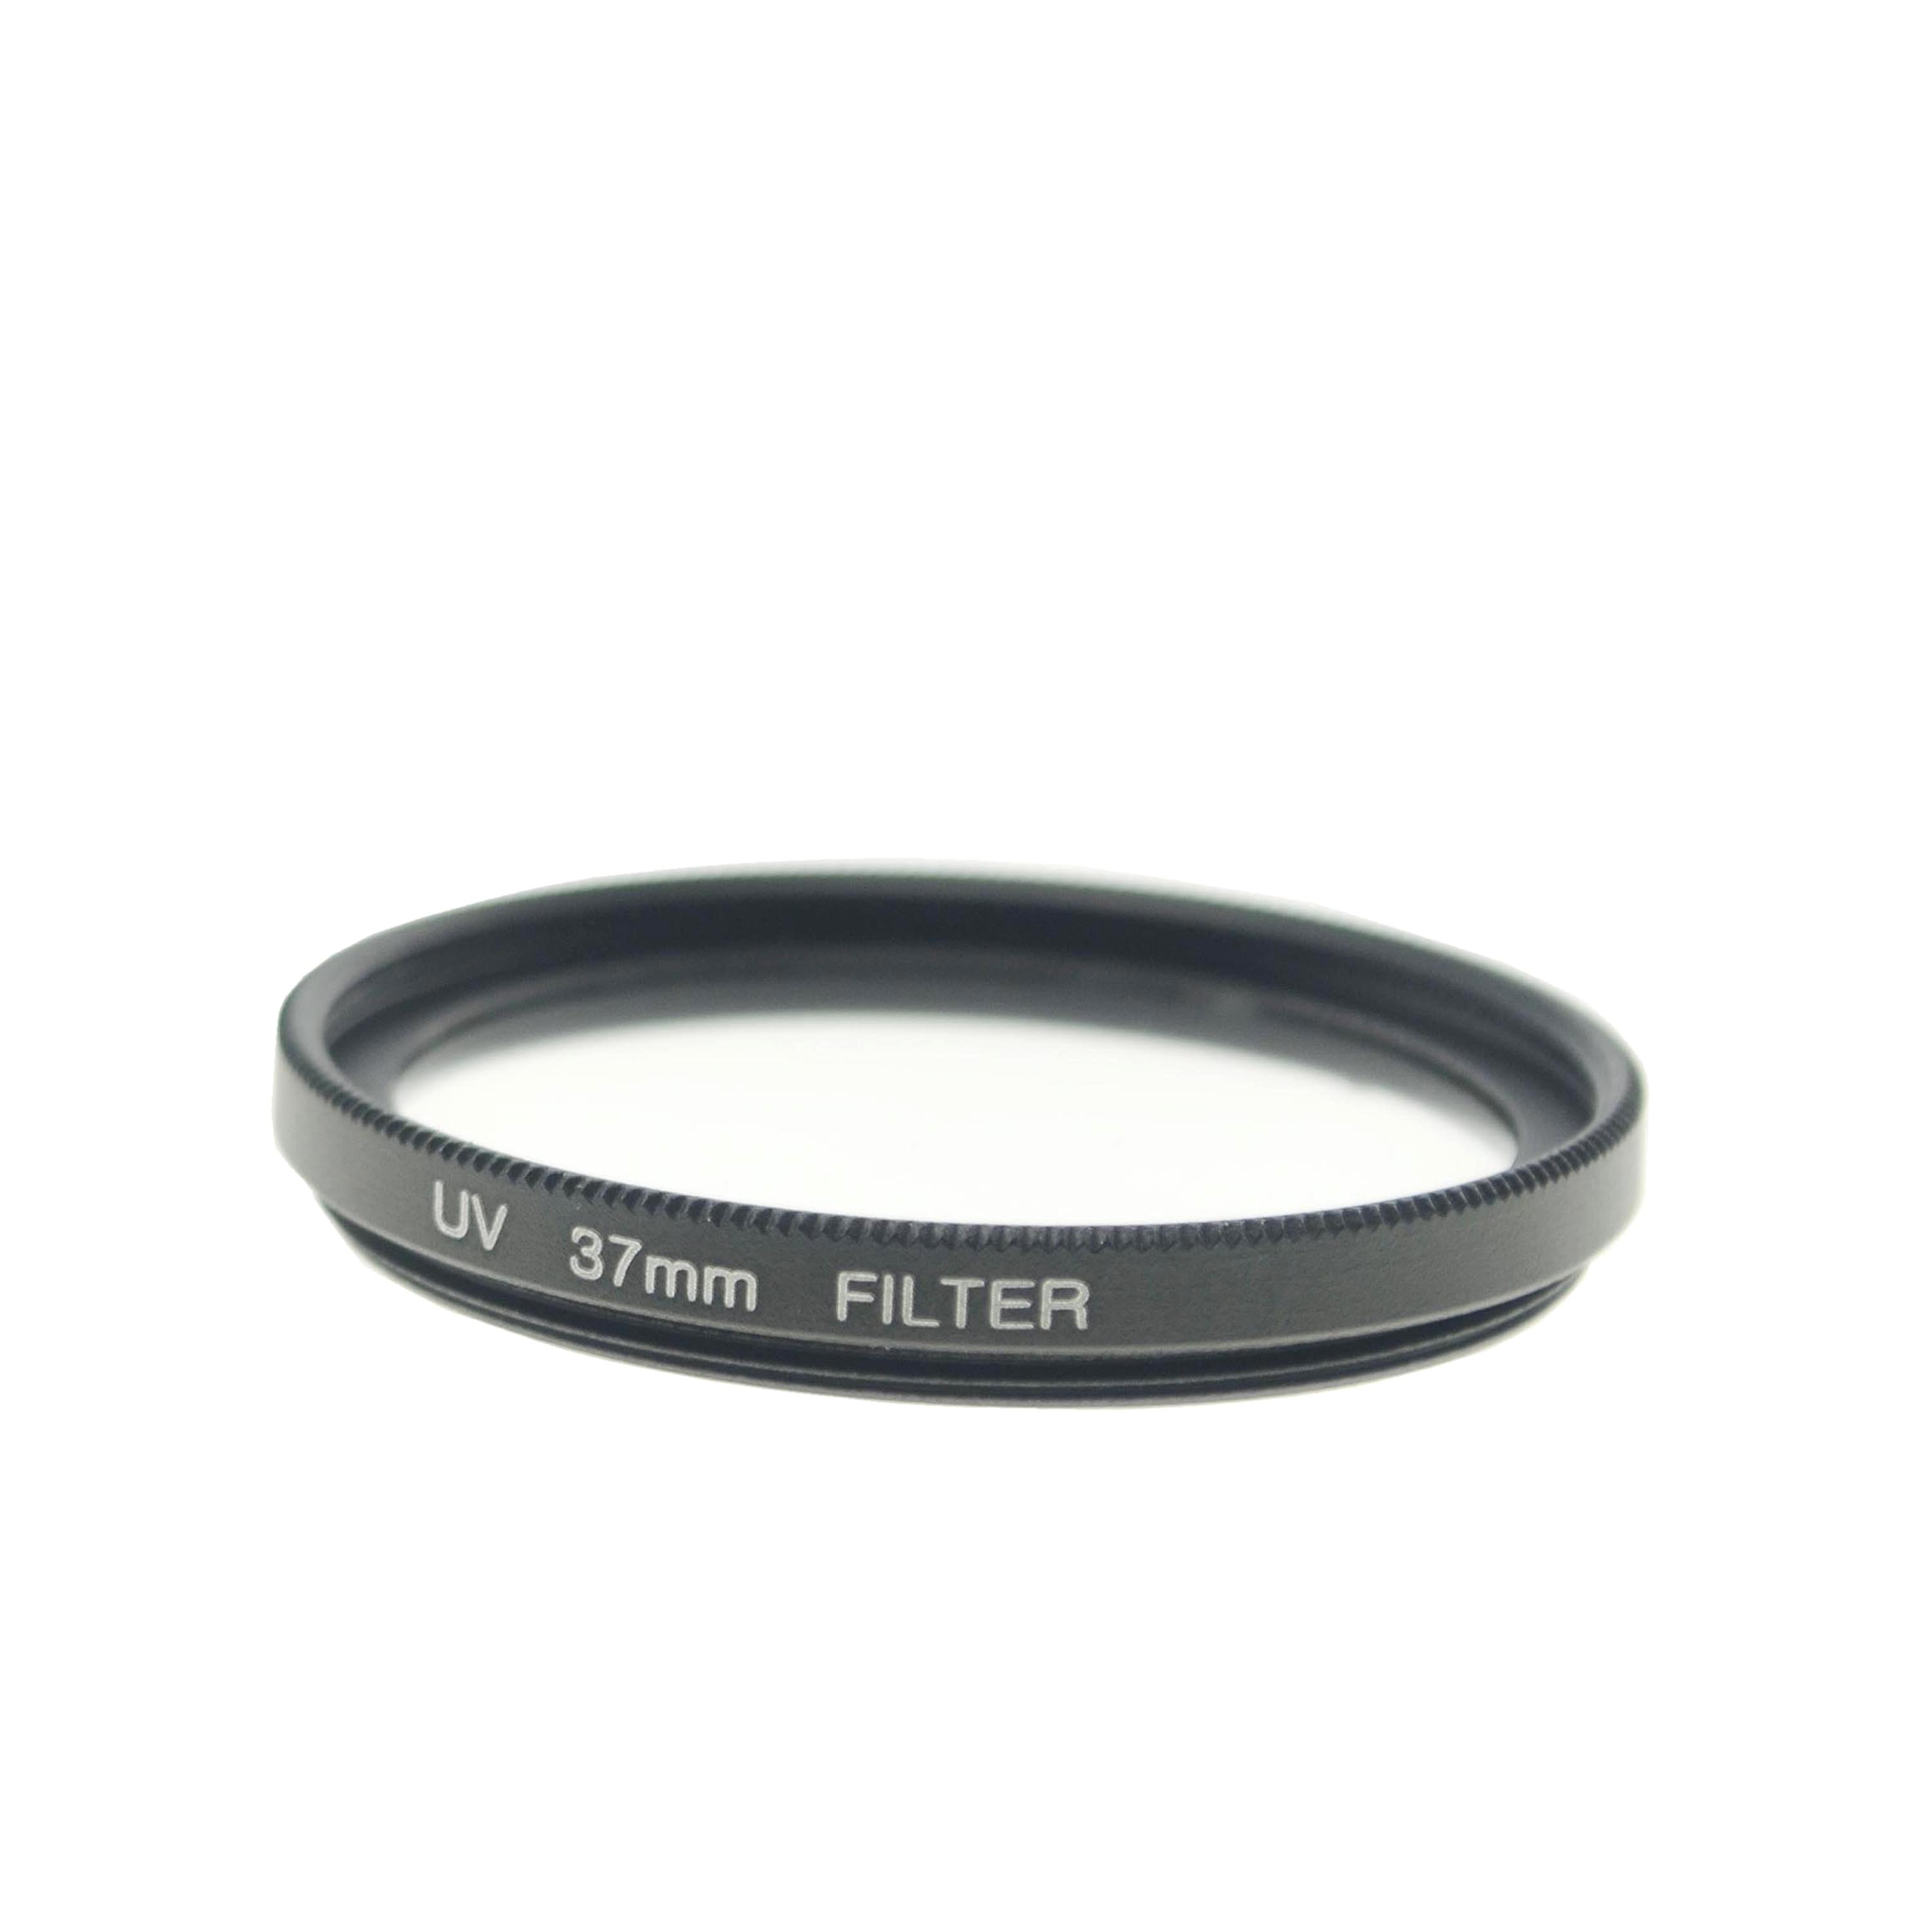 37mm UV Protection Lens Filter